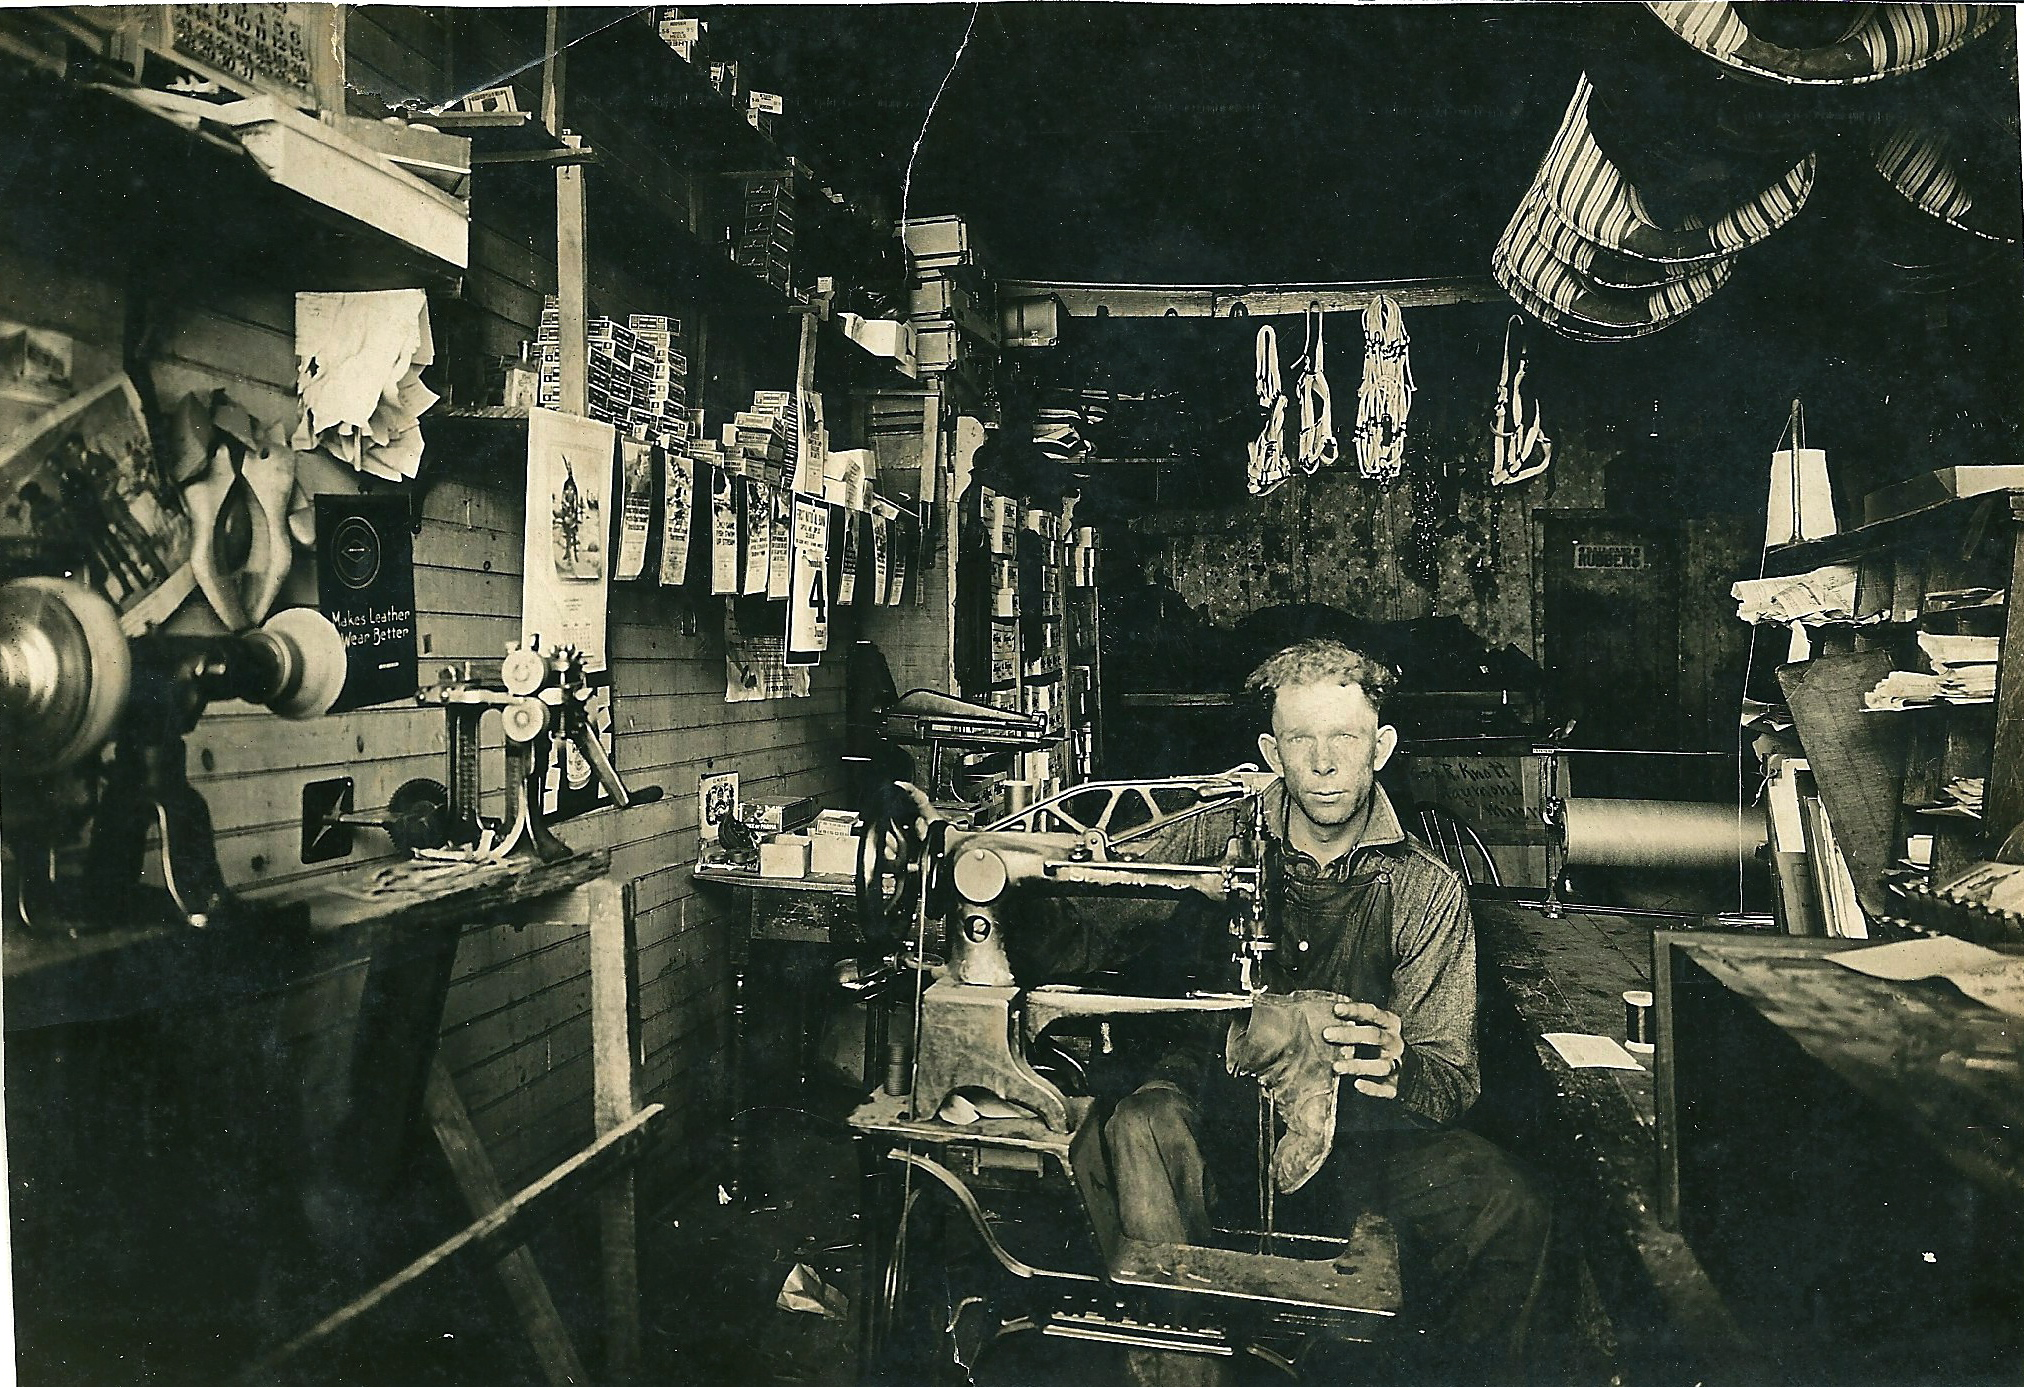 Judge in harness shop early 1920s